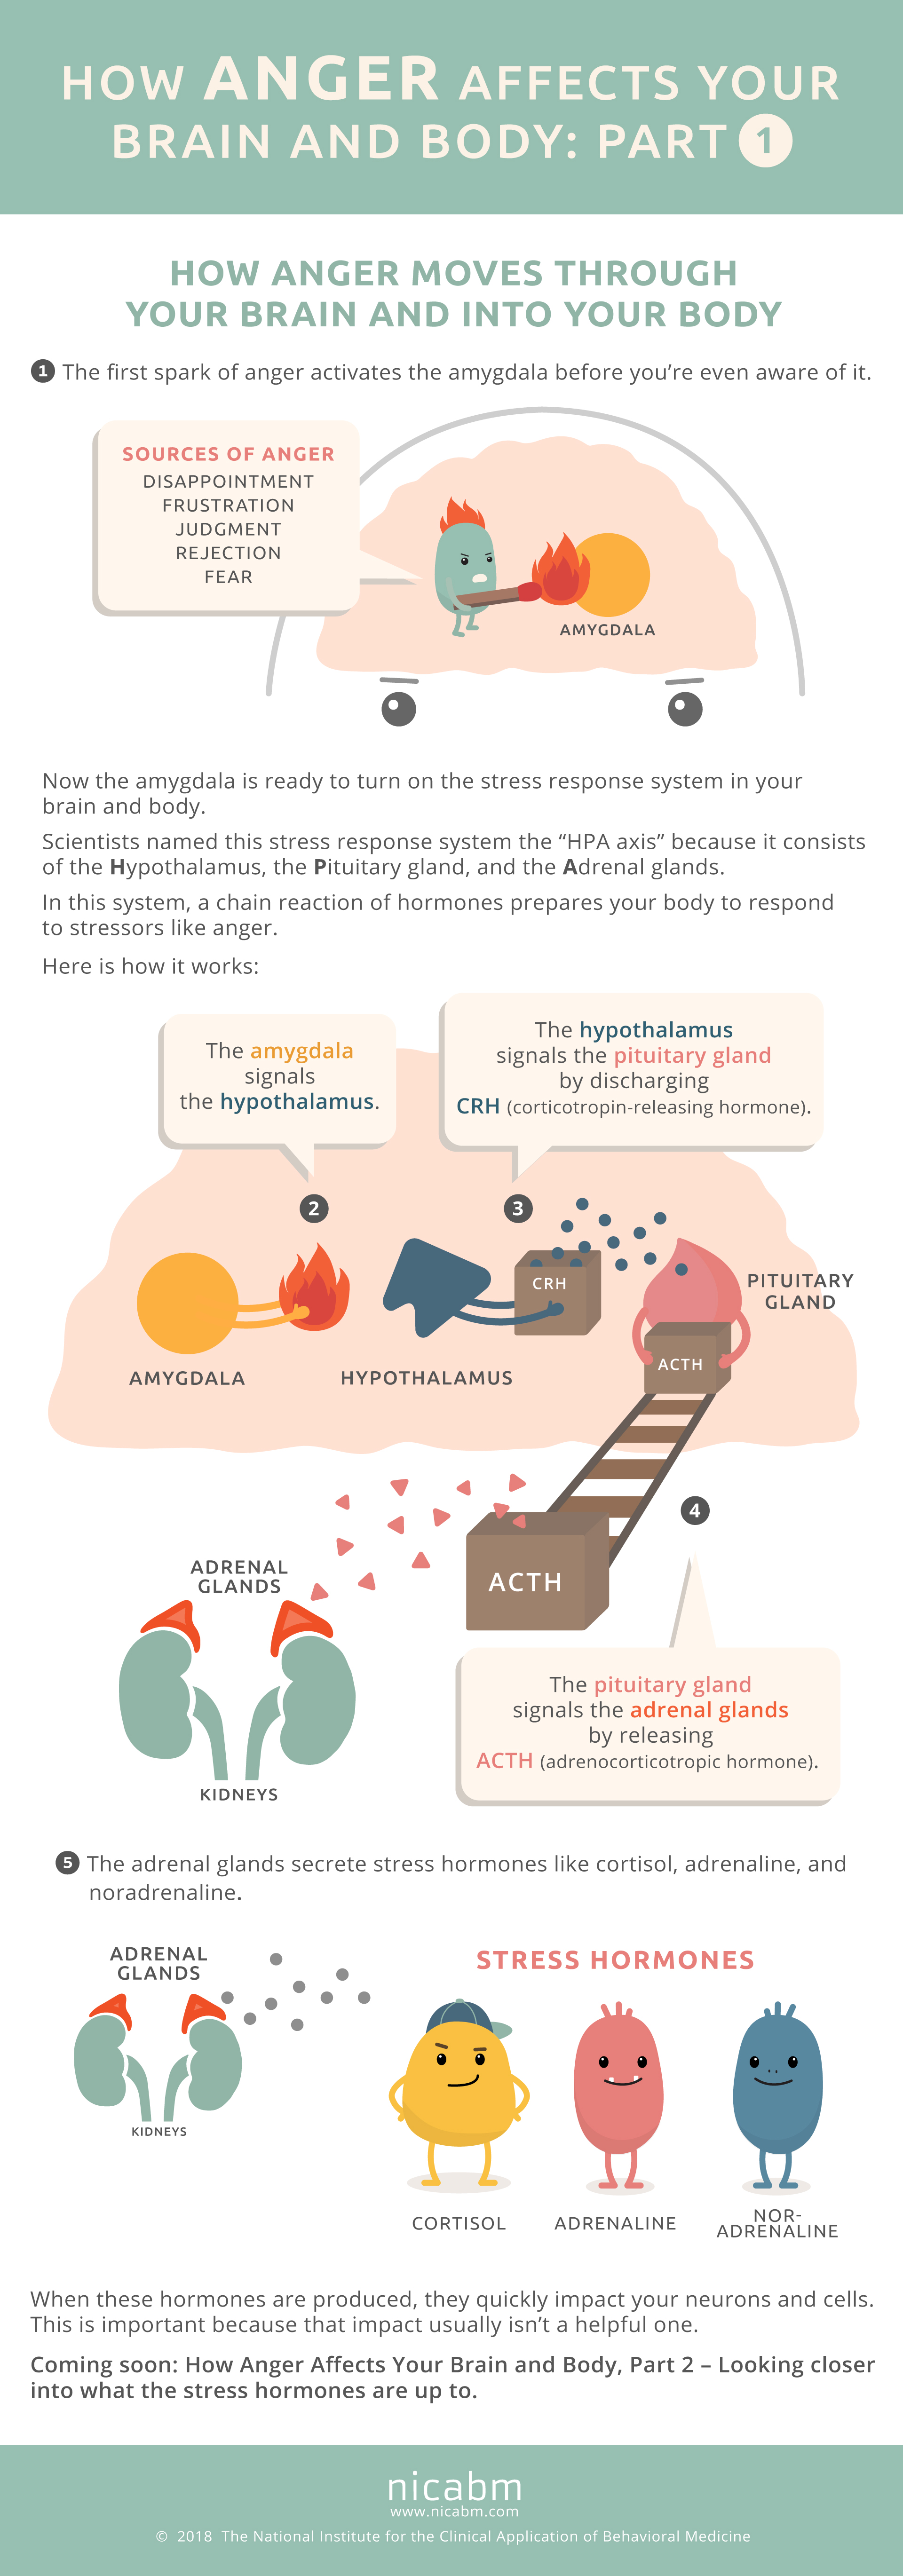 How Anger Affects The Brain And Body Infographic